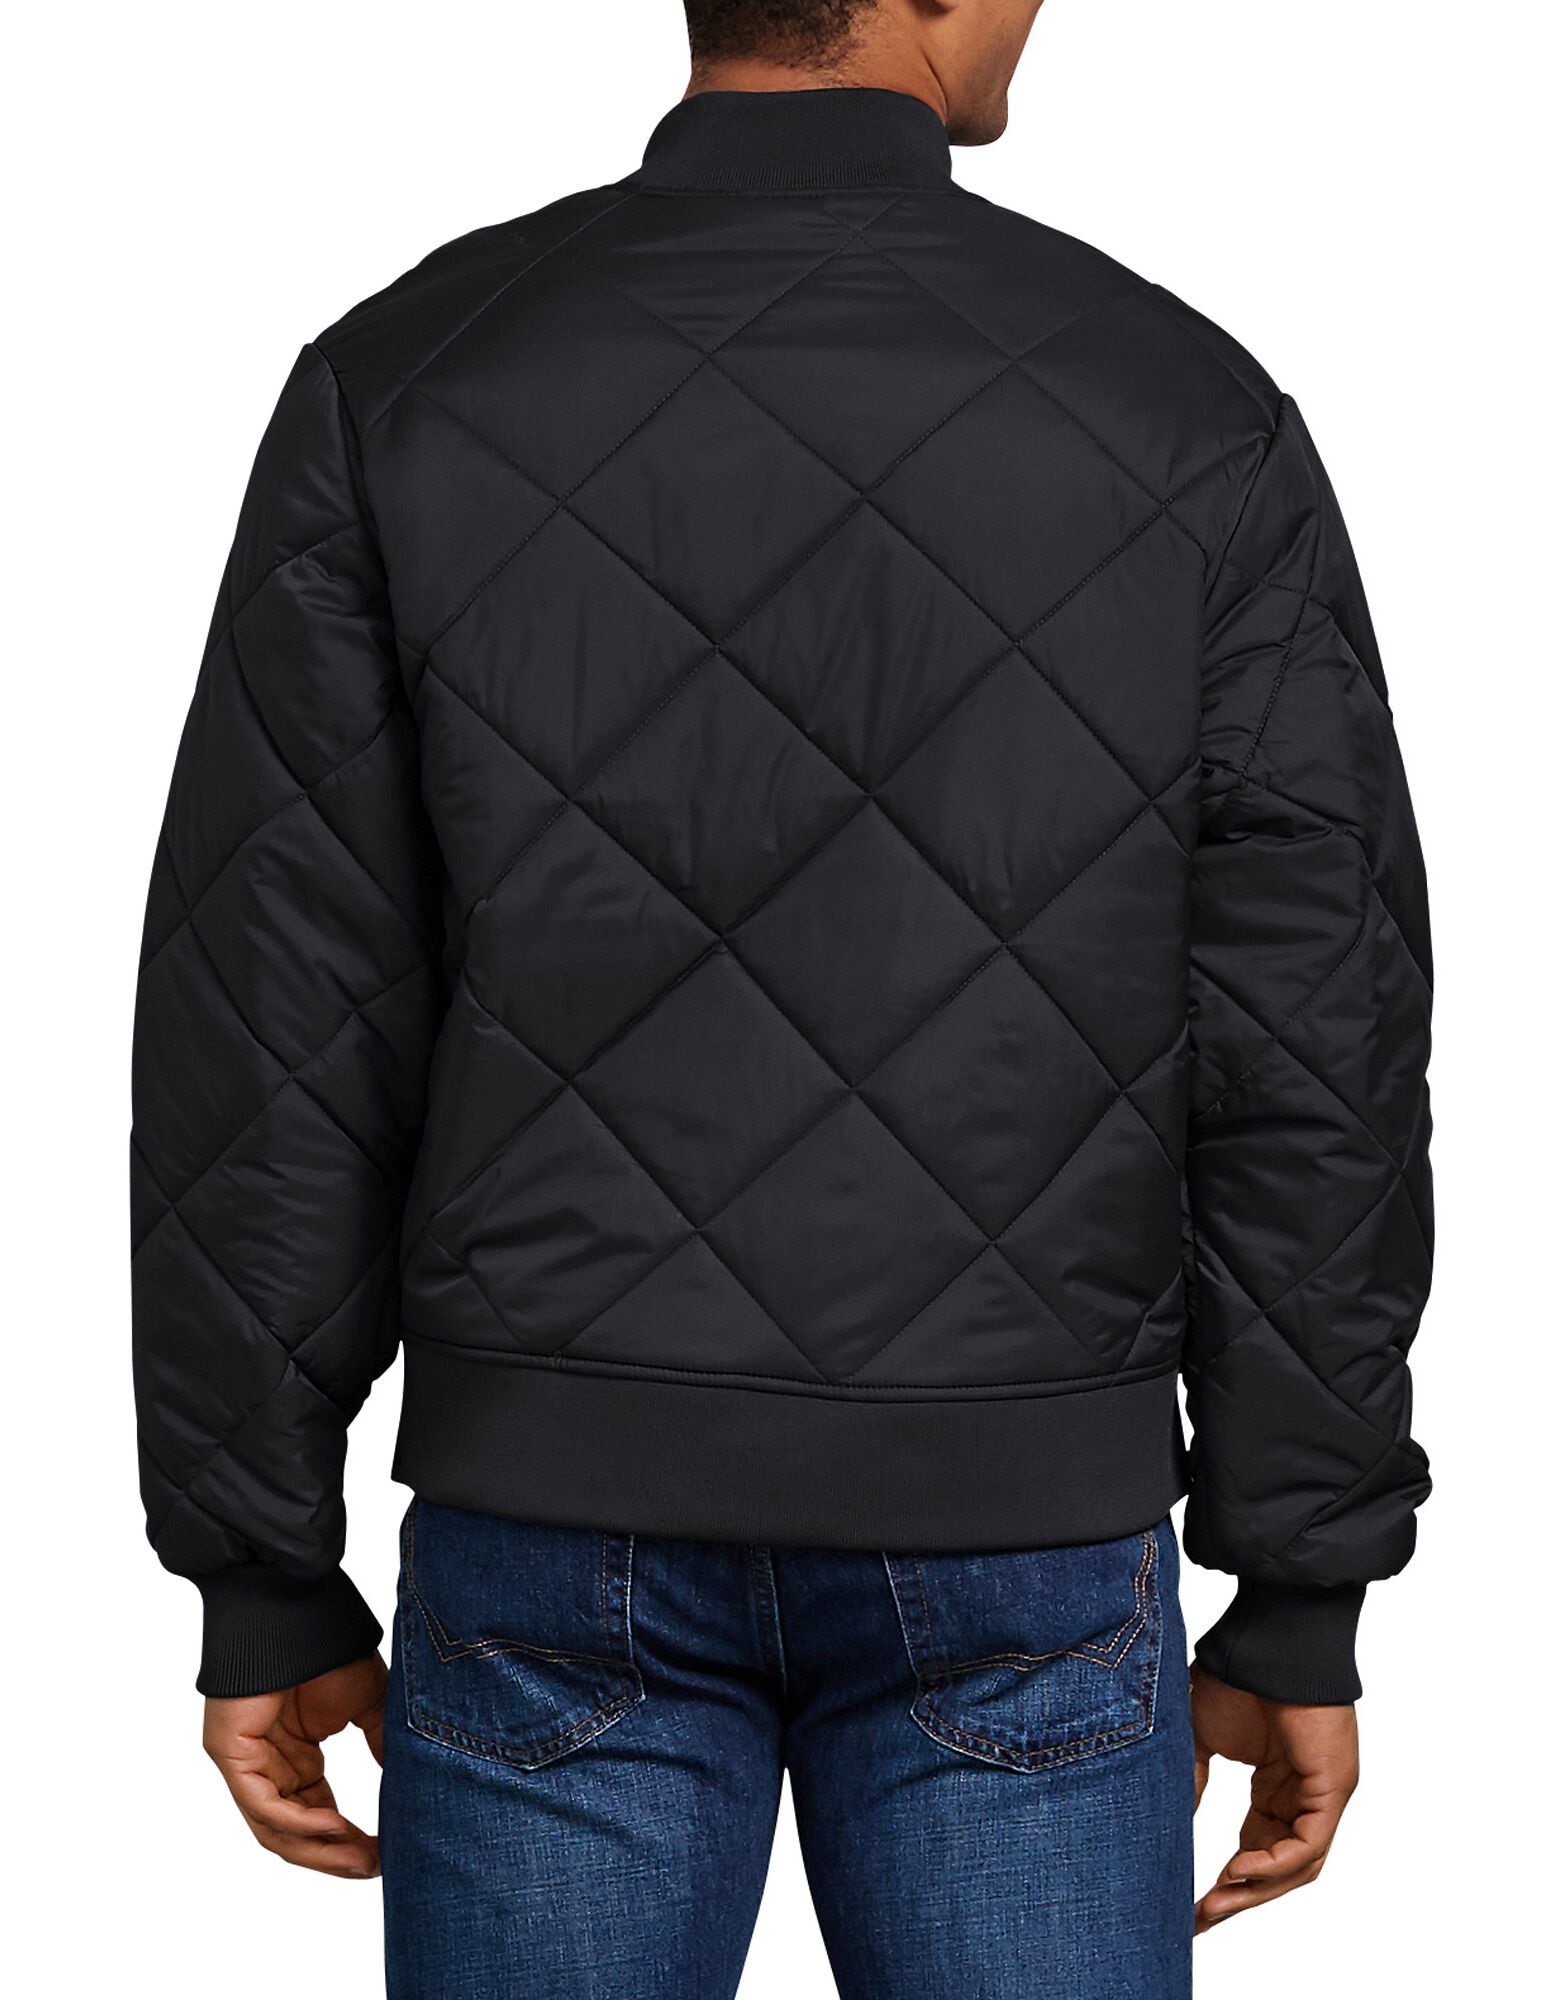 Go with a black jacket and play it classic, or venture into colorful and stand-out territory with a deep sapphire blue or army green quilted jacket. All our choices are well-crafted, delivering versatility and warmth.